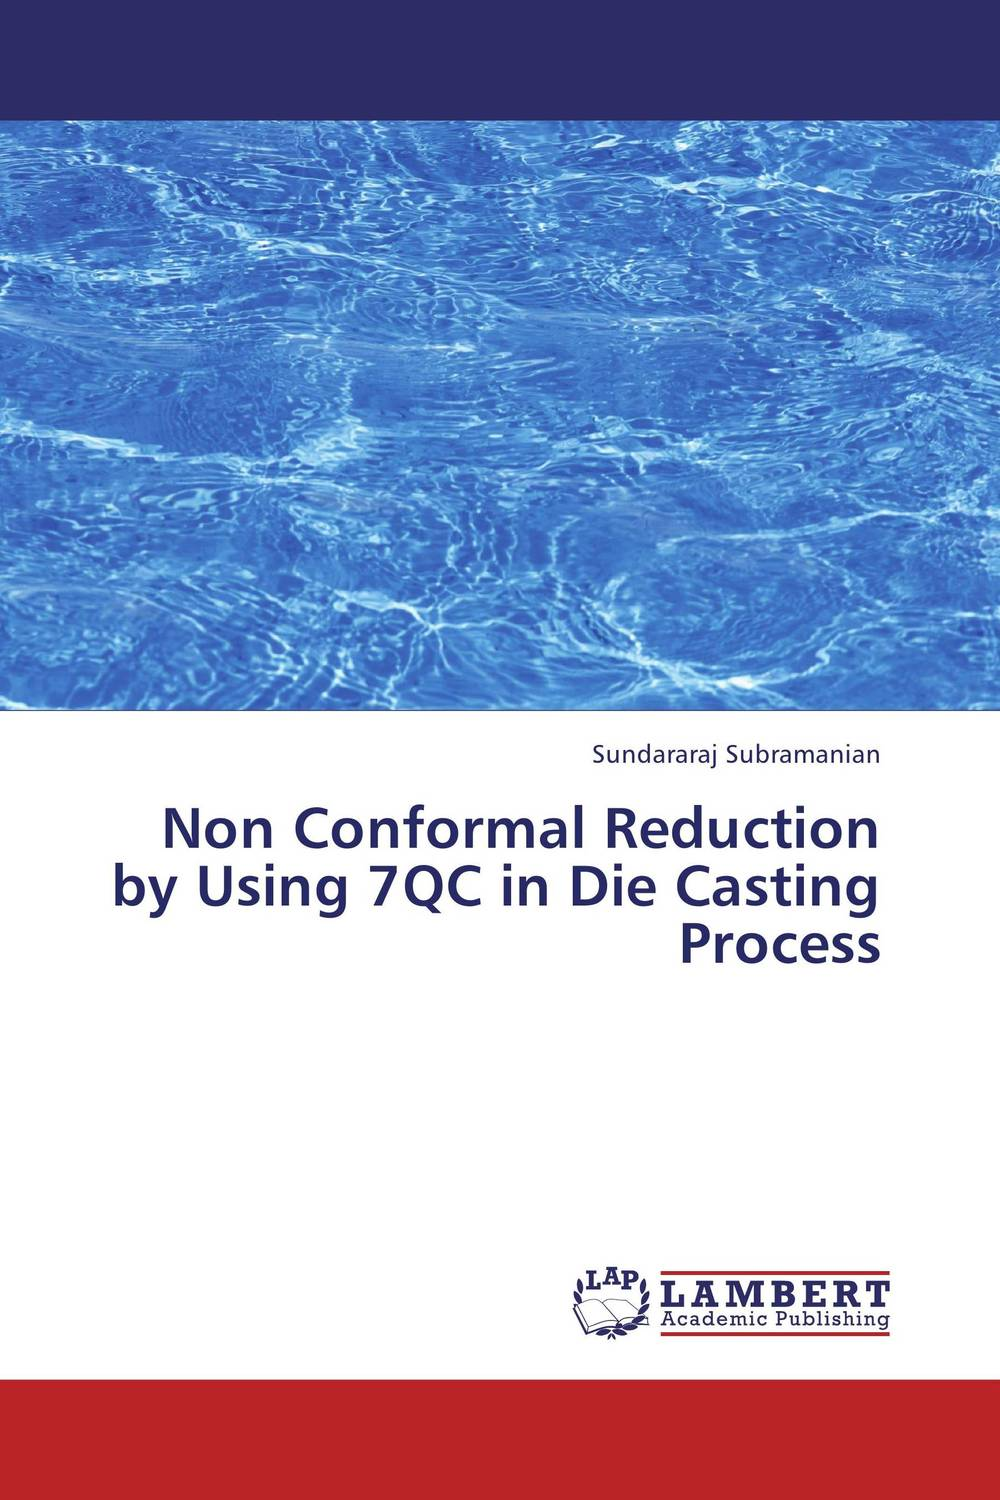 Non Conformal Reduction by Using 7QC in Die Casting Process steven bragg m cost reduction analysis tools and strategies